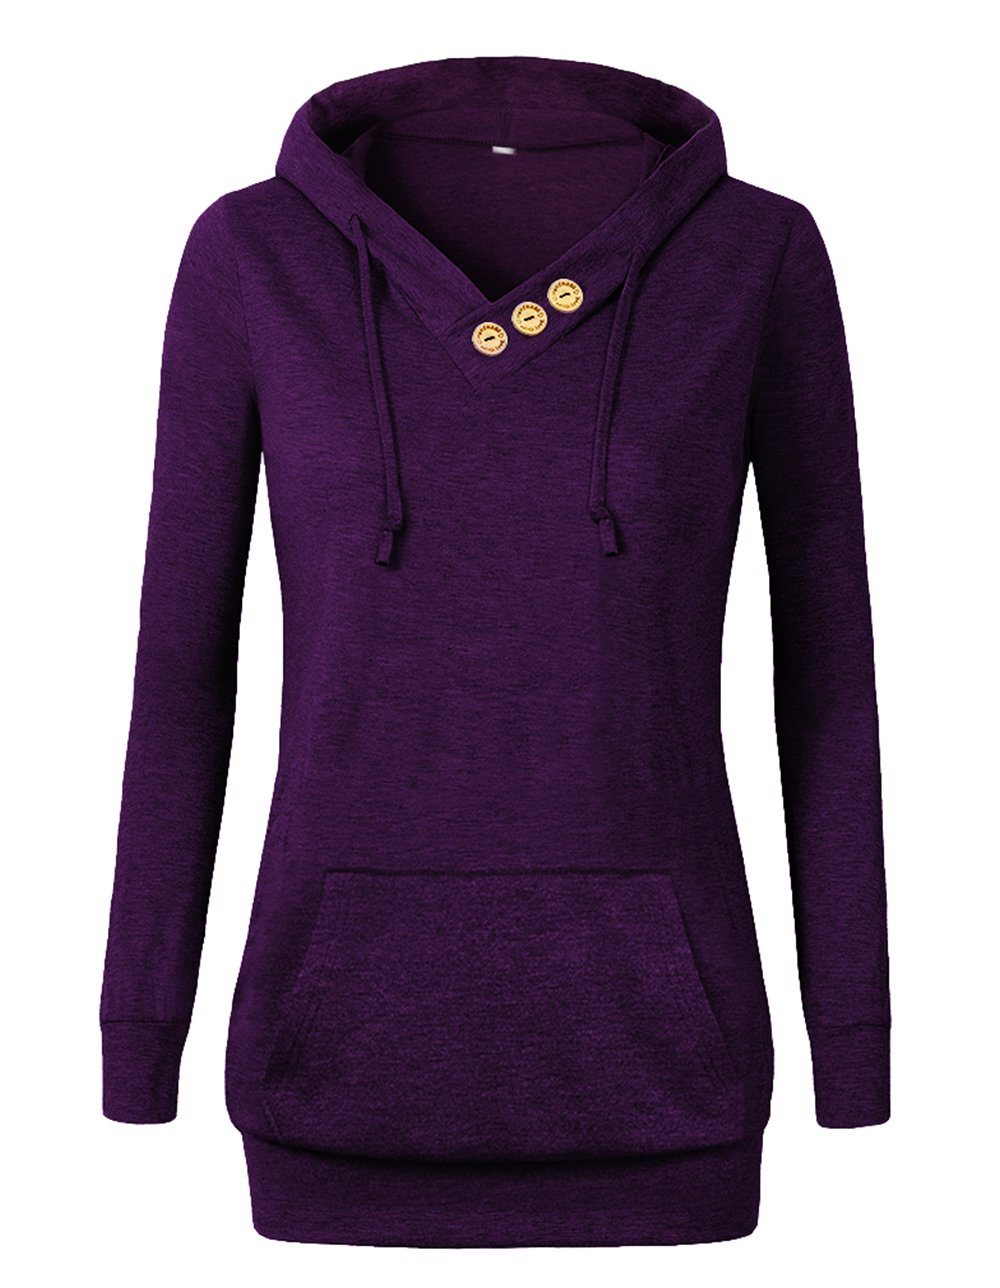 VOIANLIMO Women's Sweatshirts Long Sleeve Button V-Neck Pockets Pullover Hoodies Purple XL